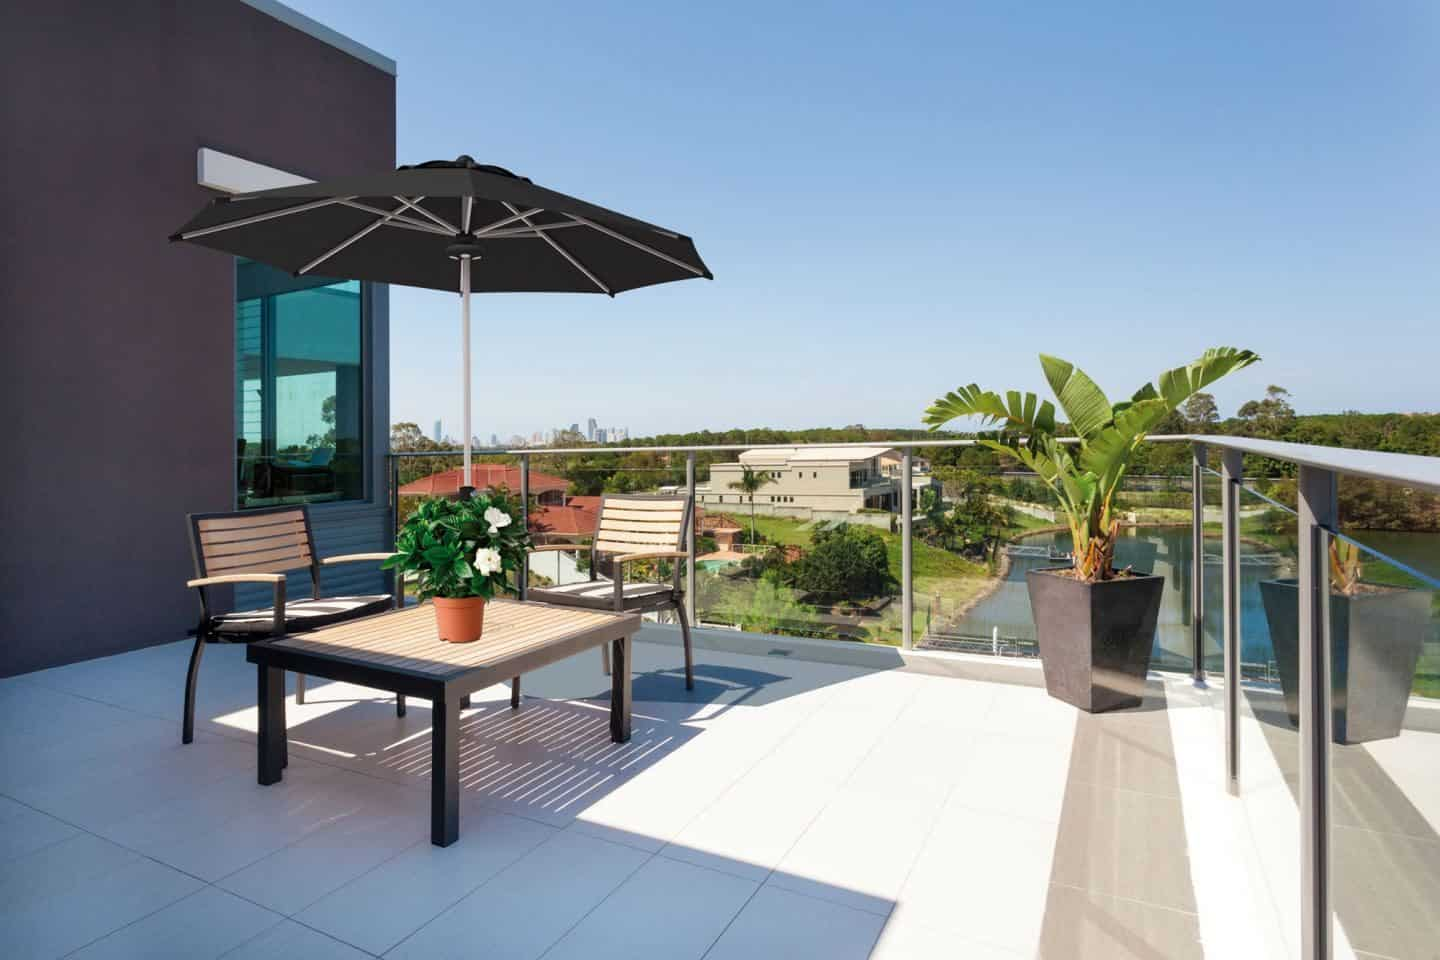 Garden Parasol from Solero Parasols.  Large black garden parasol above an outdoor furniture set on a terrace.